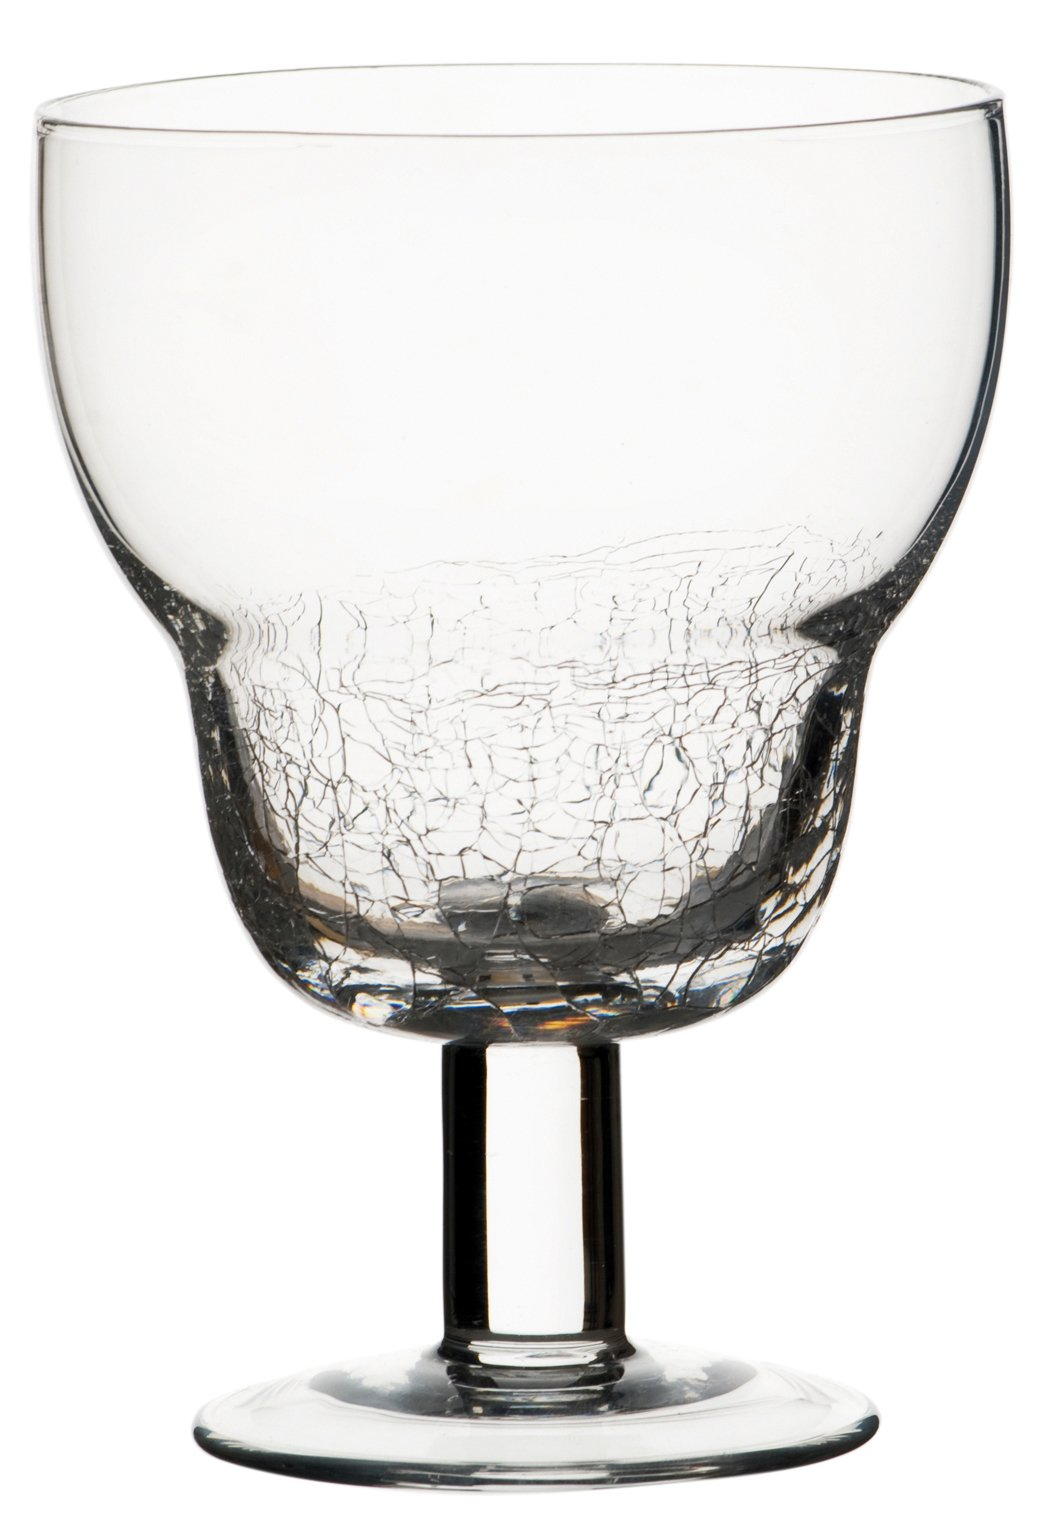 Sibo Homeconcept Bono Crackle Water Glass 40 cl (Pack of 6)